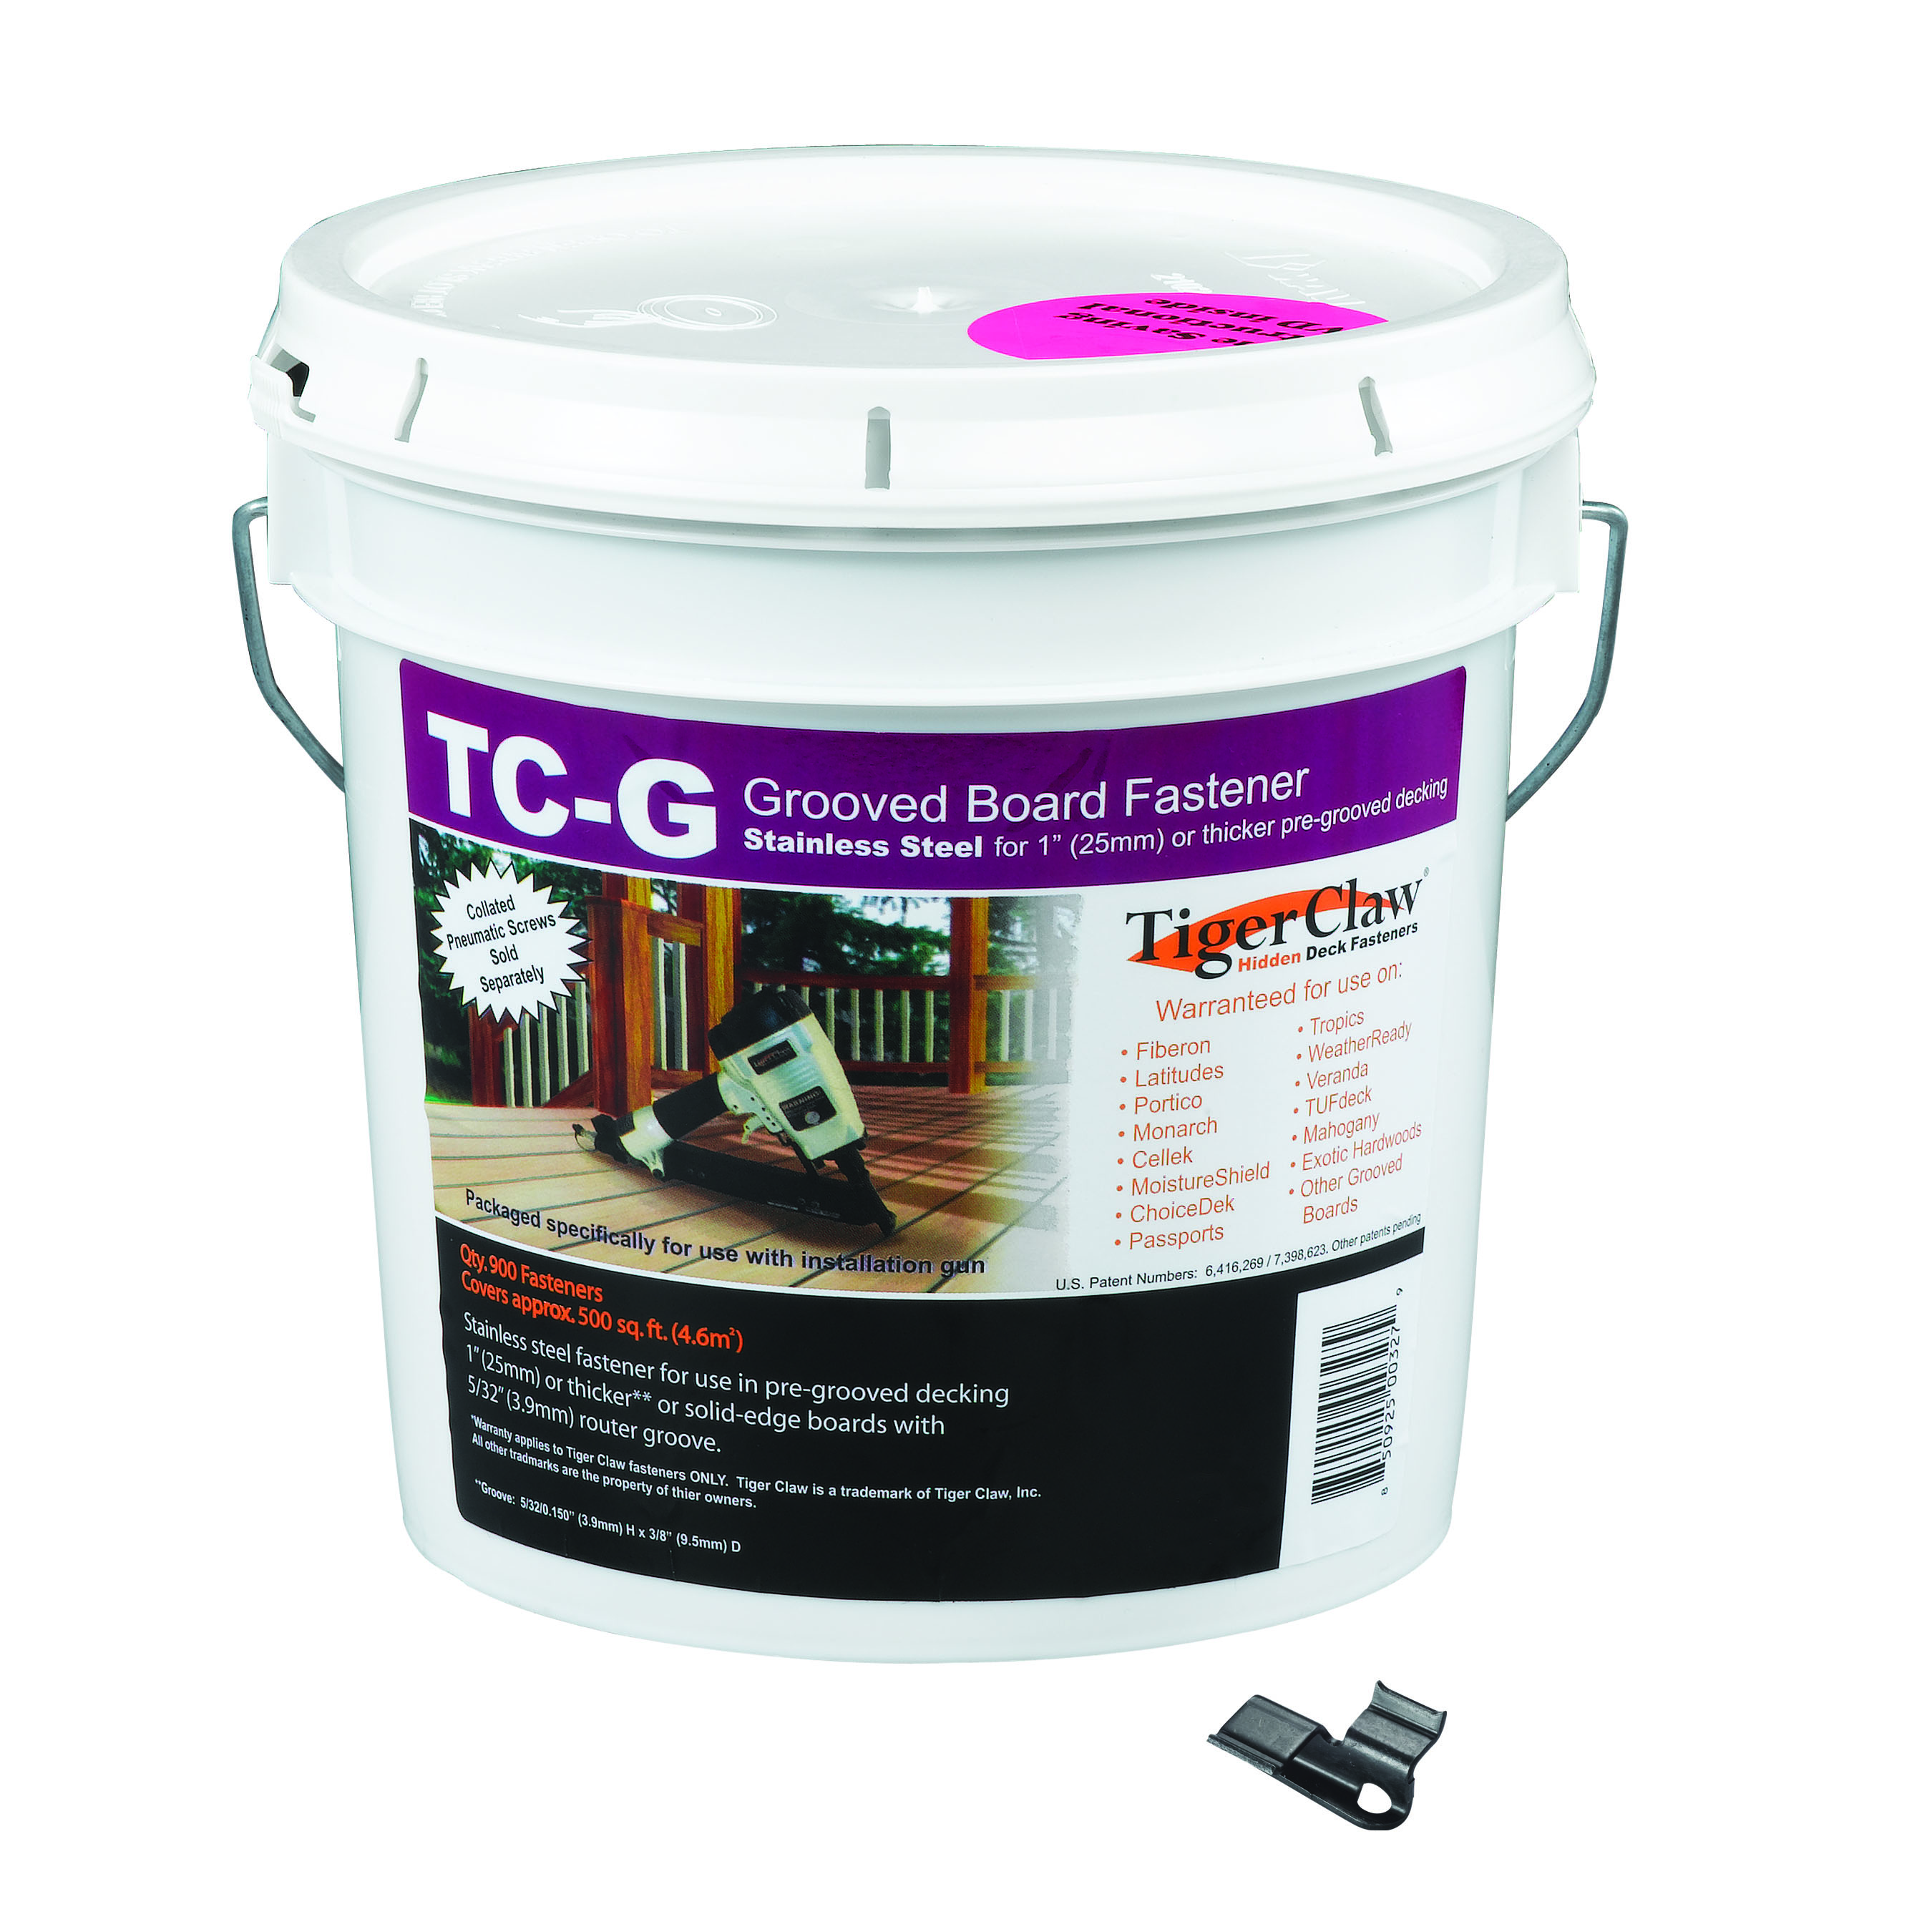 Tiger Claw TC-G Bucket for Grooved Decking, 900 clips